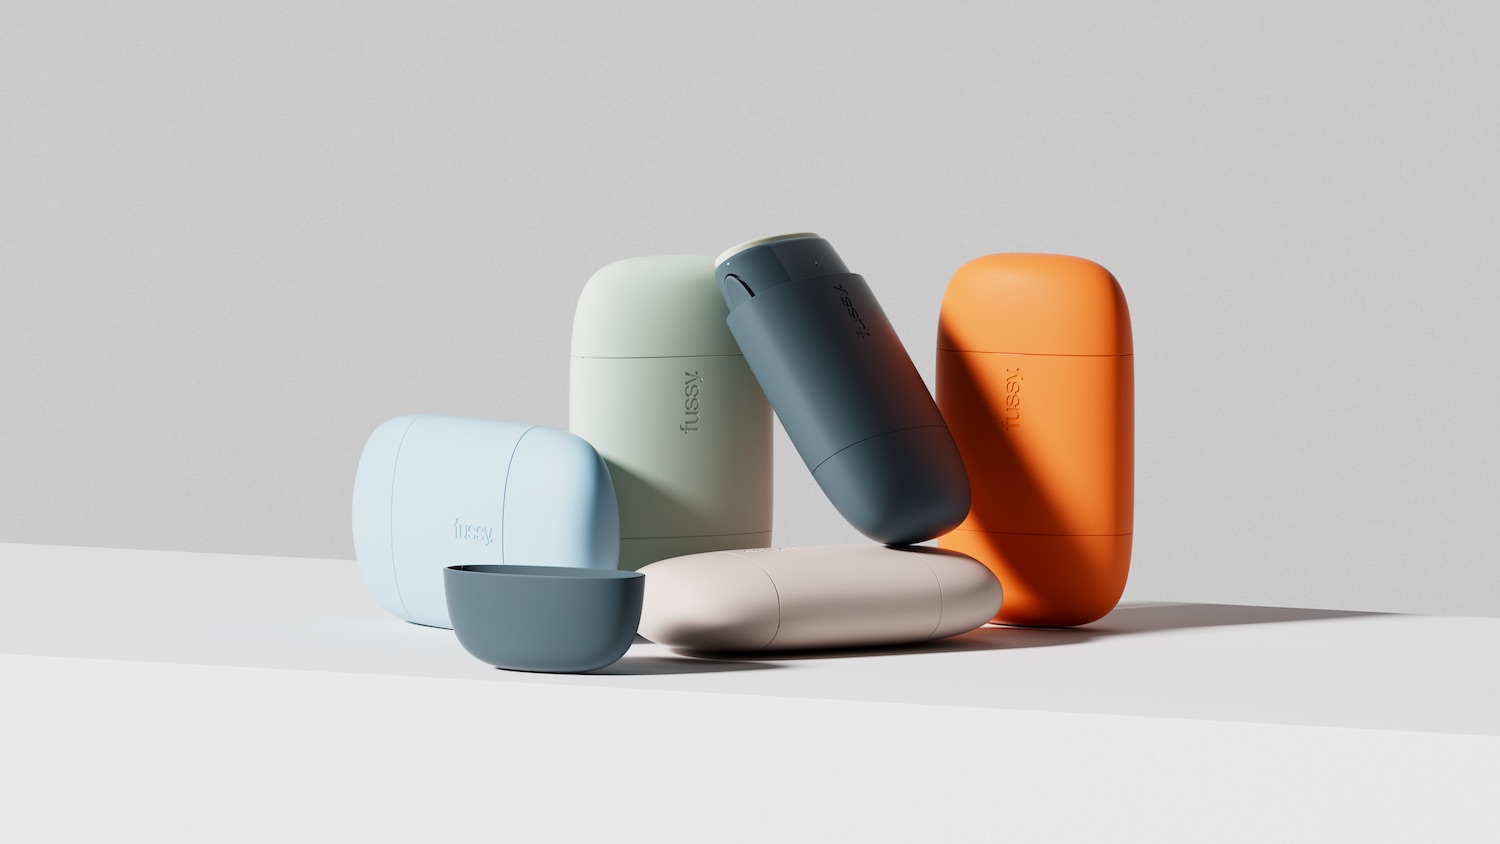 Refillable Brand Fussy Says It Will Stop 1M Plastic Deodorant Containers From Entering The Environment